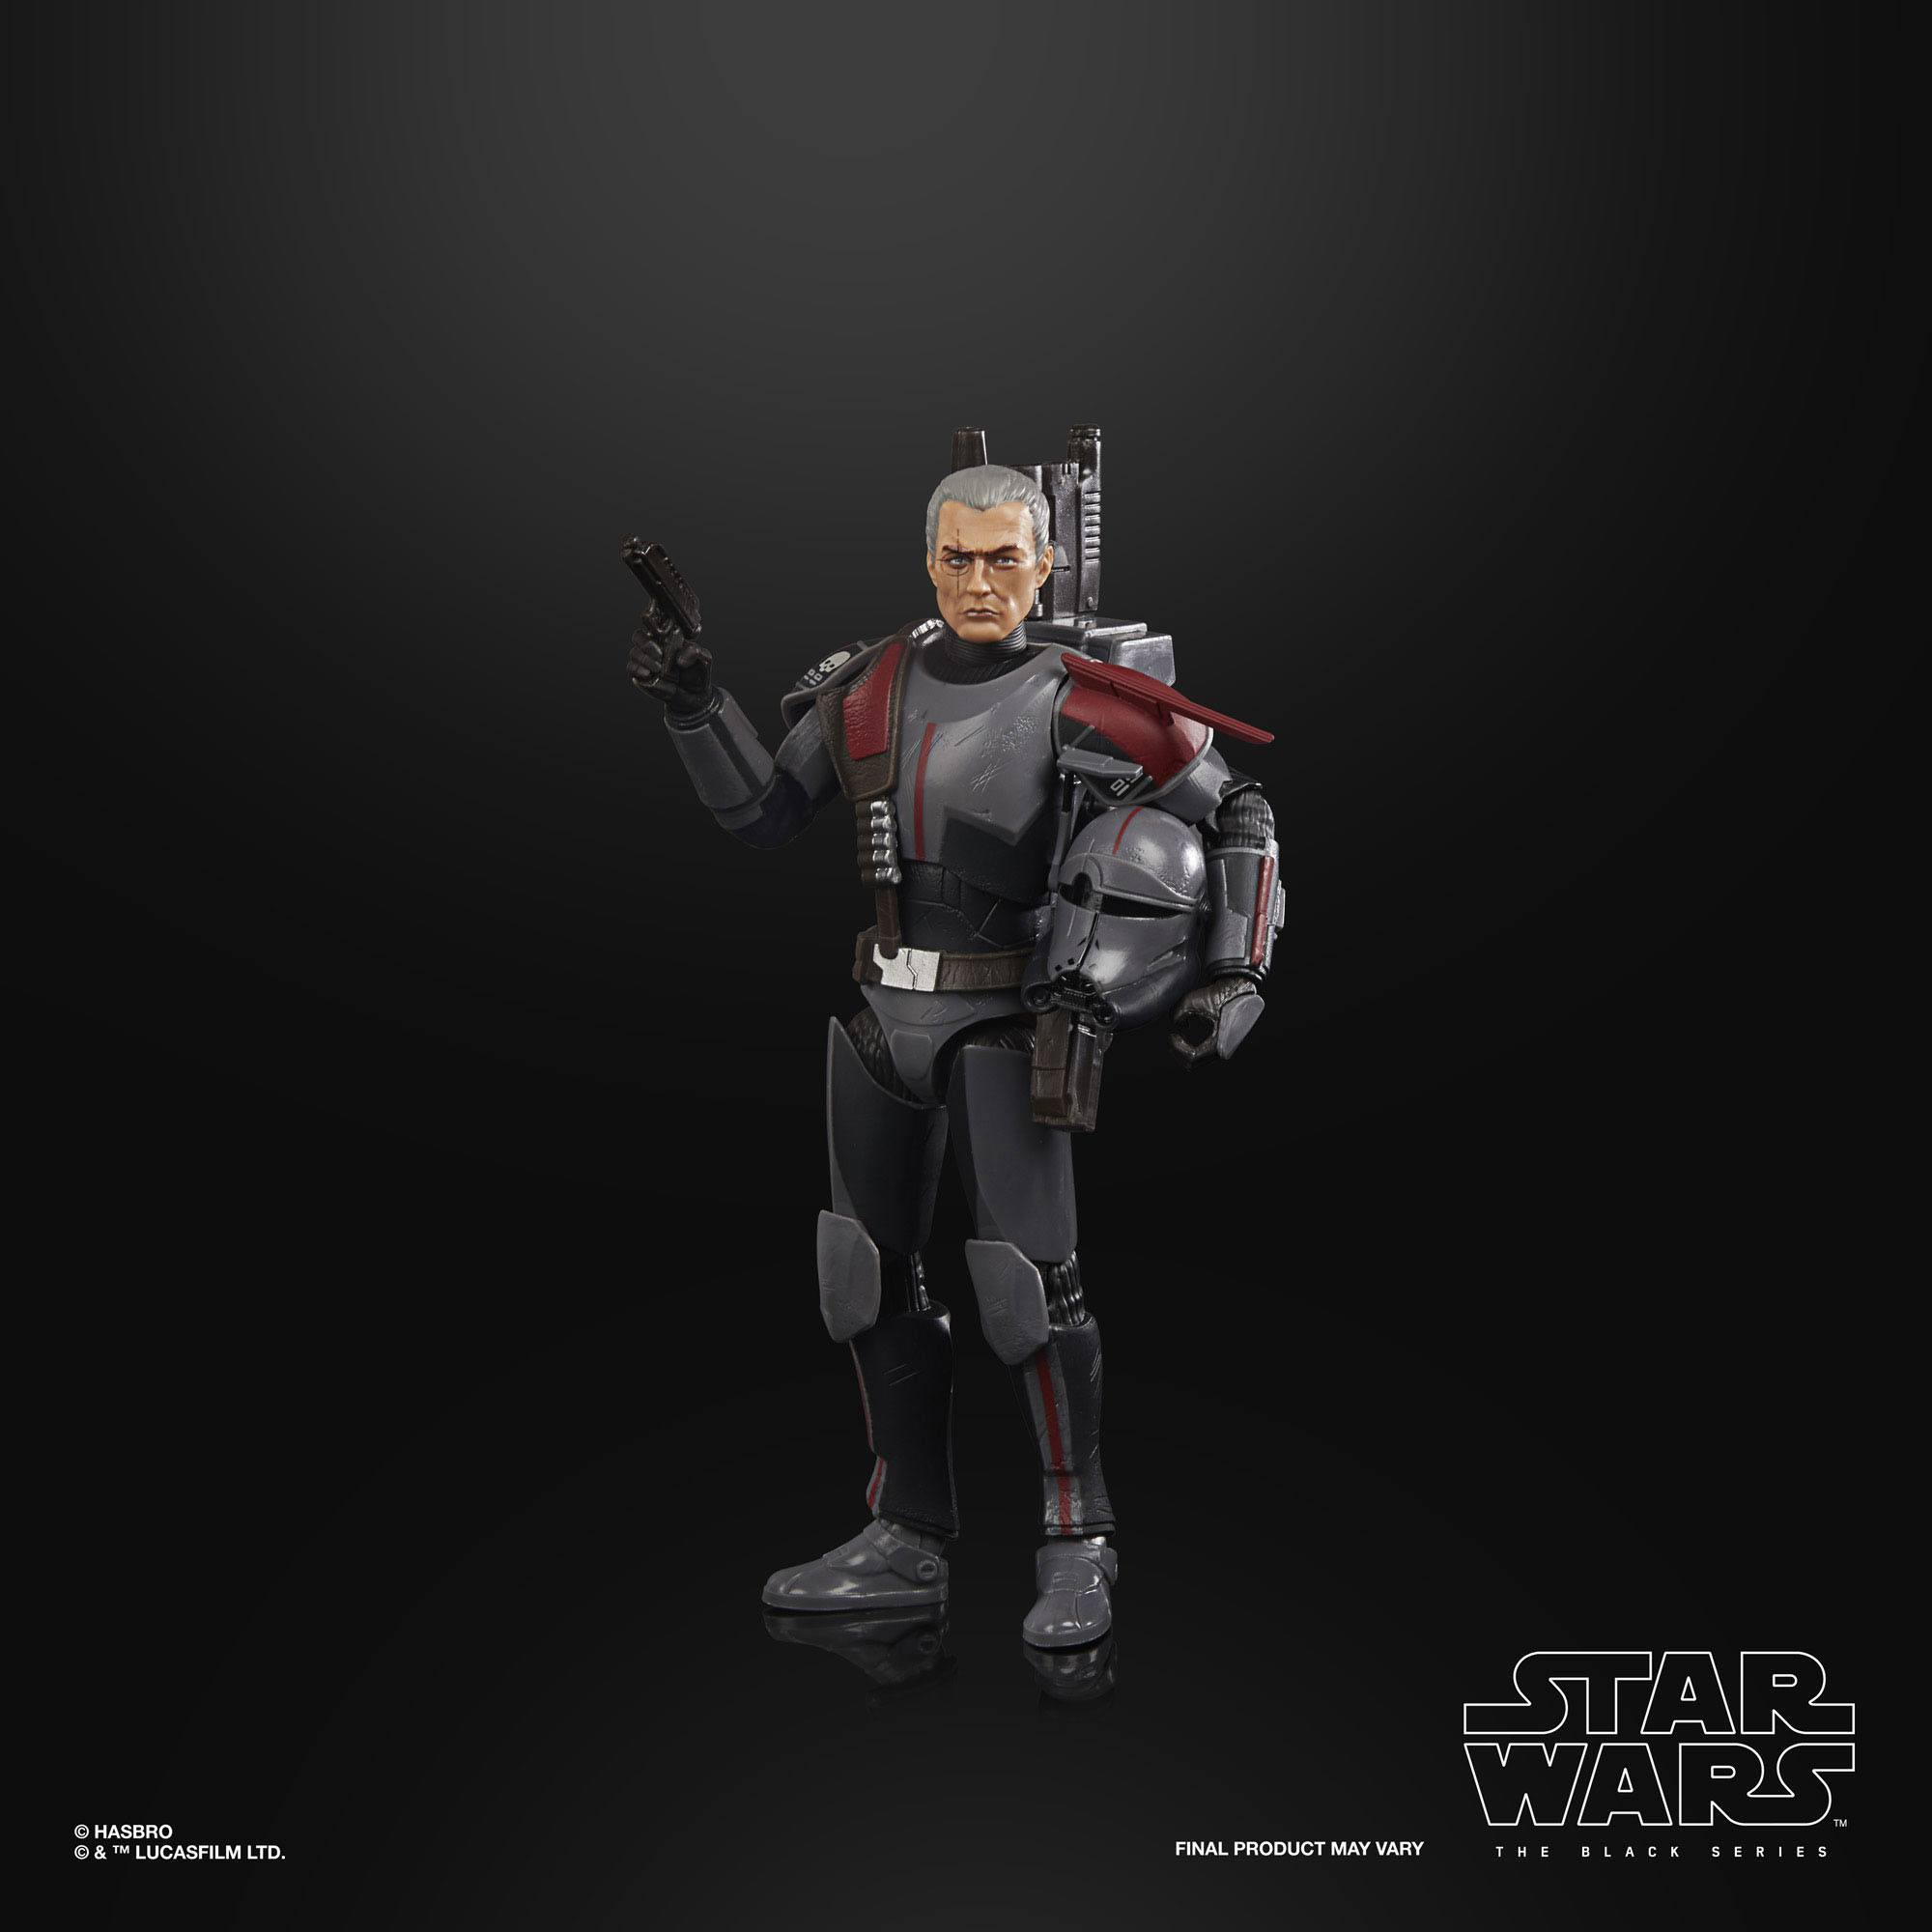 Star Wars Black Series Actionfiguren 15 cm 2021 Wave 2 Sortiment (5) E89085L03 05010993749294